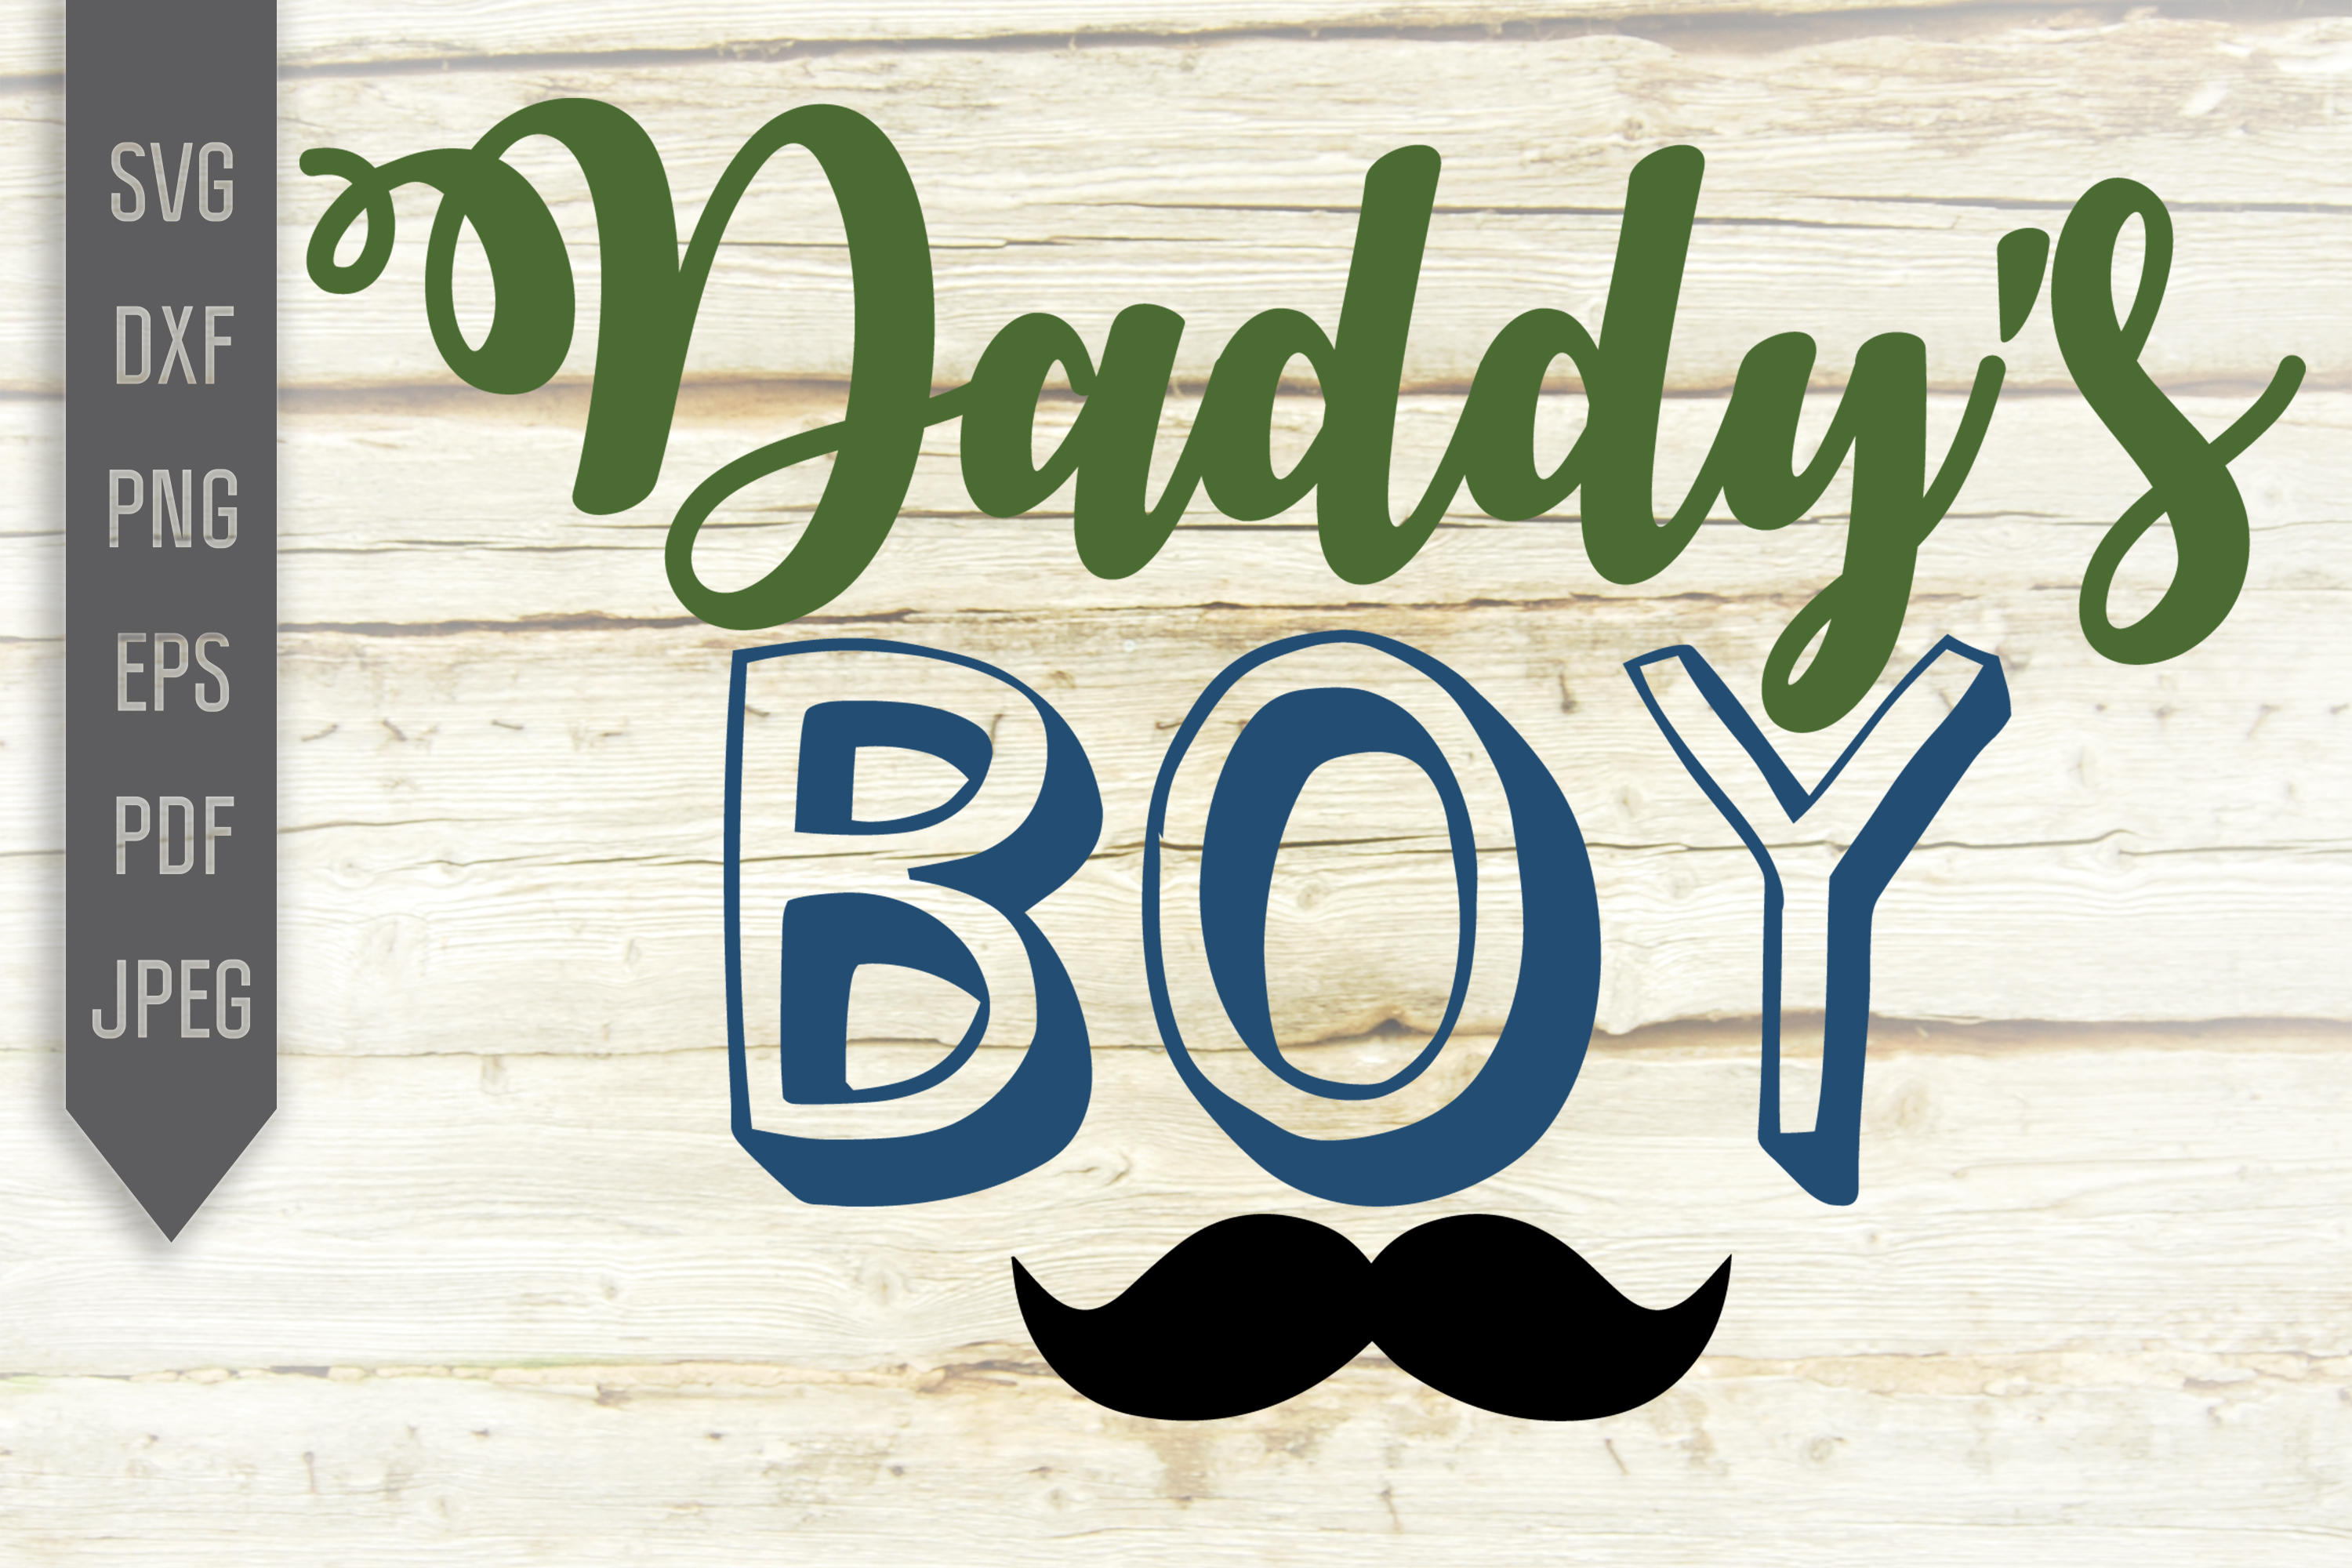 Download Free Daddy S Boy Iron On Sublimation Graphic By Svglaboratory for Cricut Explore, Silhouette and other cutting machines.